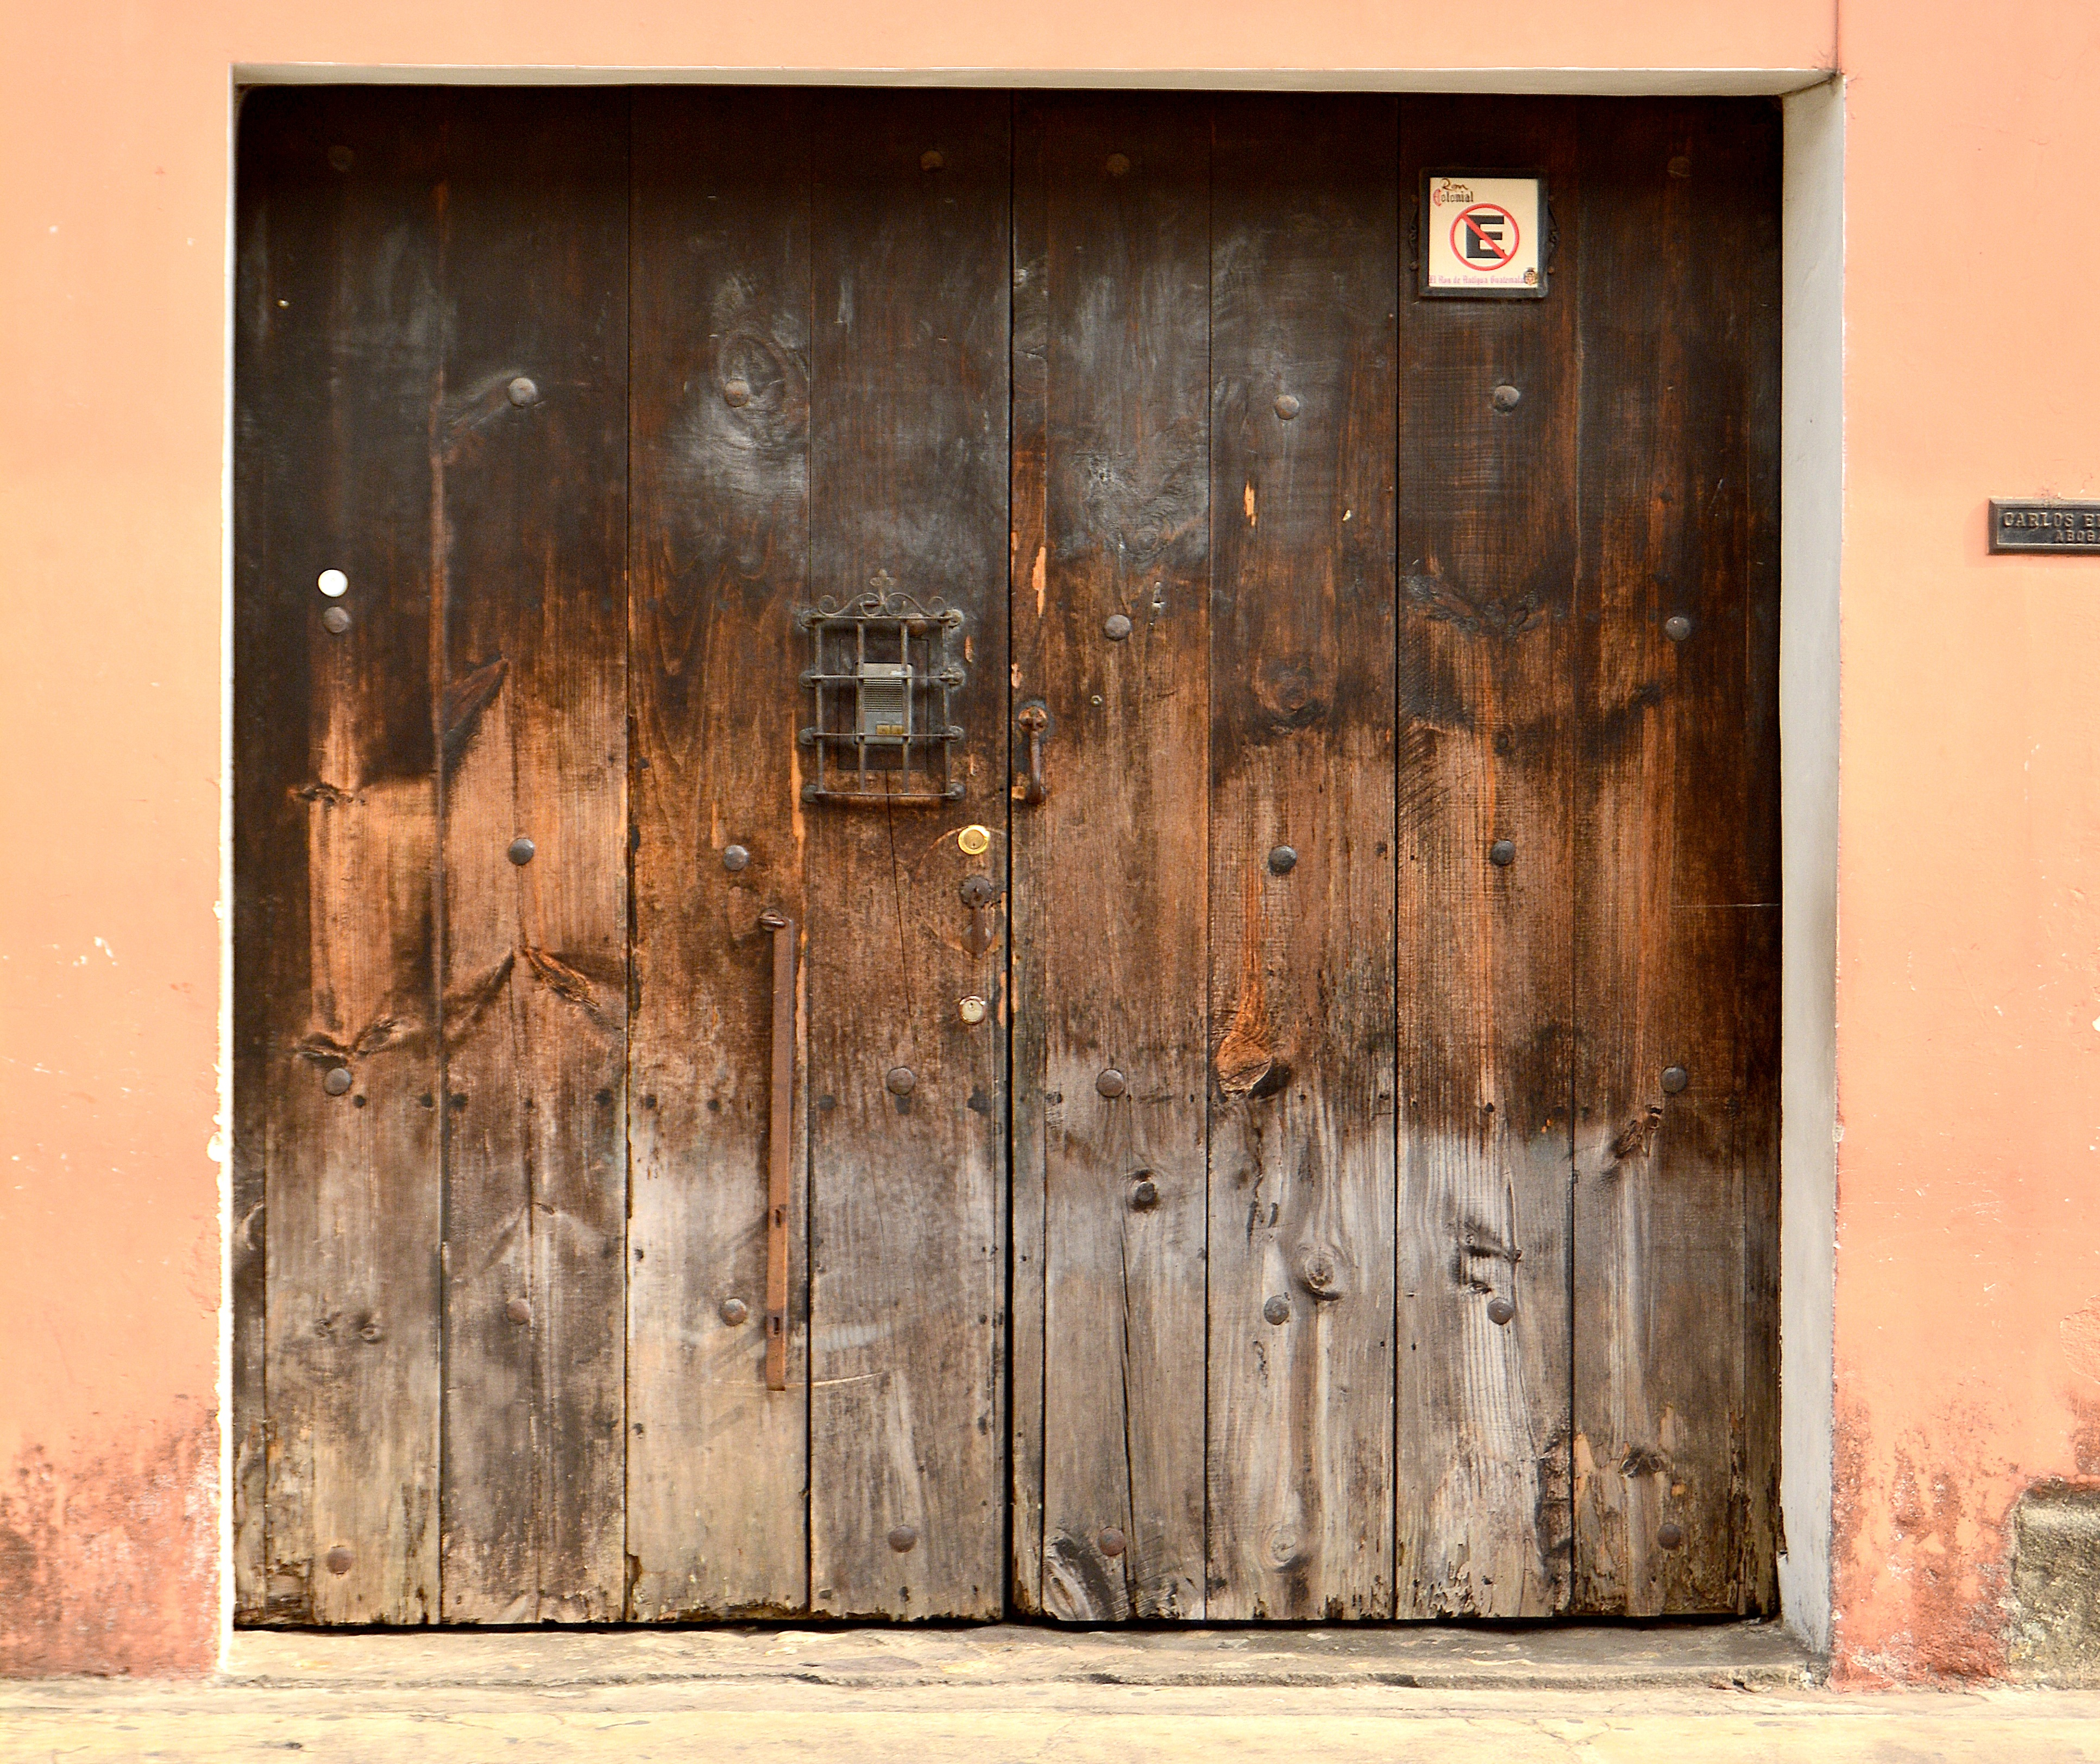 Free Images : texture, floor, window, city, wall, facade, furniture ...